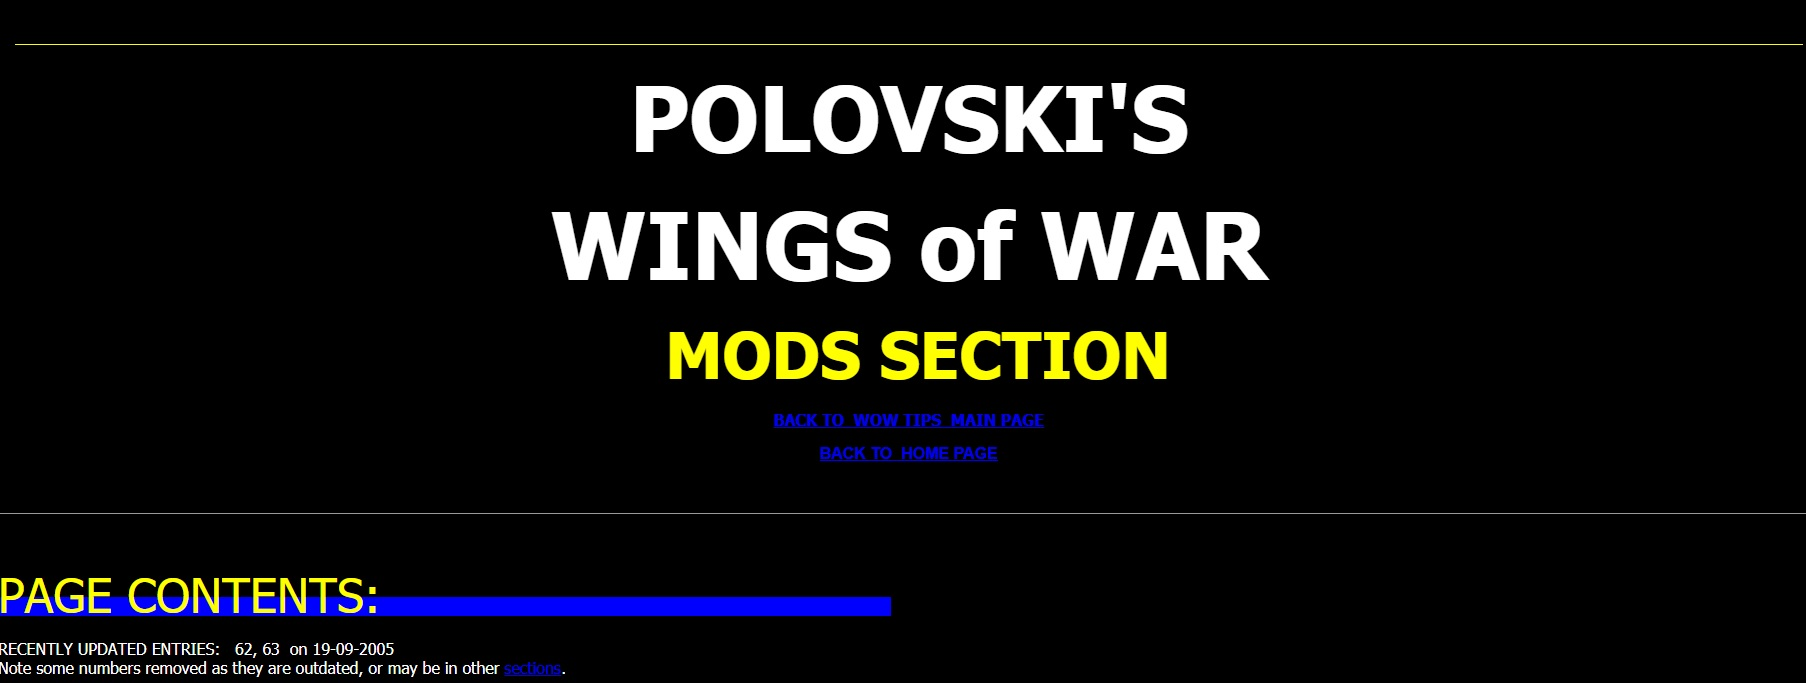 Pols MOD section.jpg